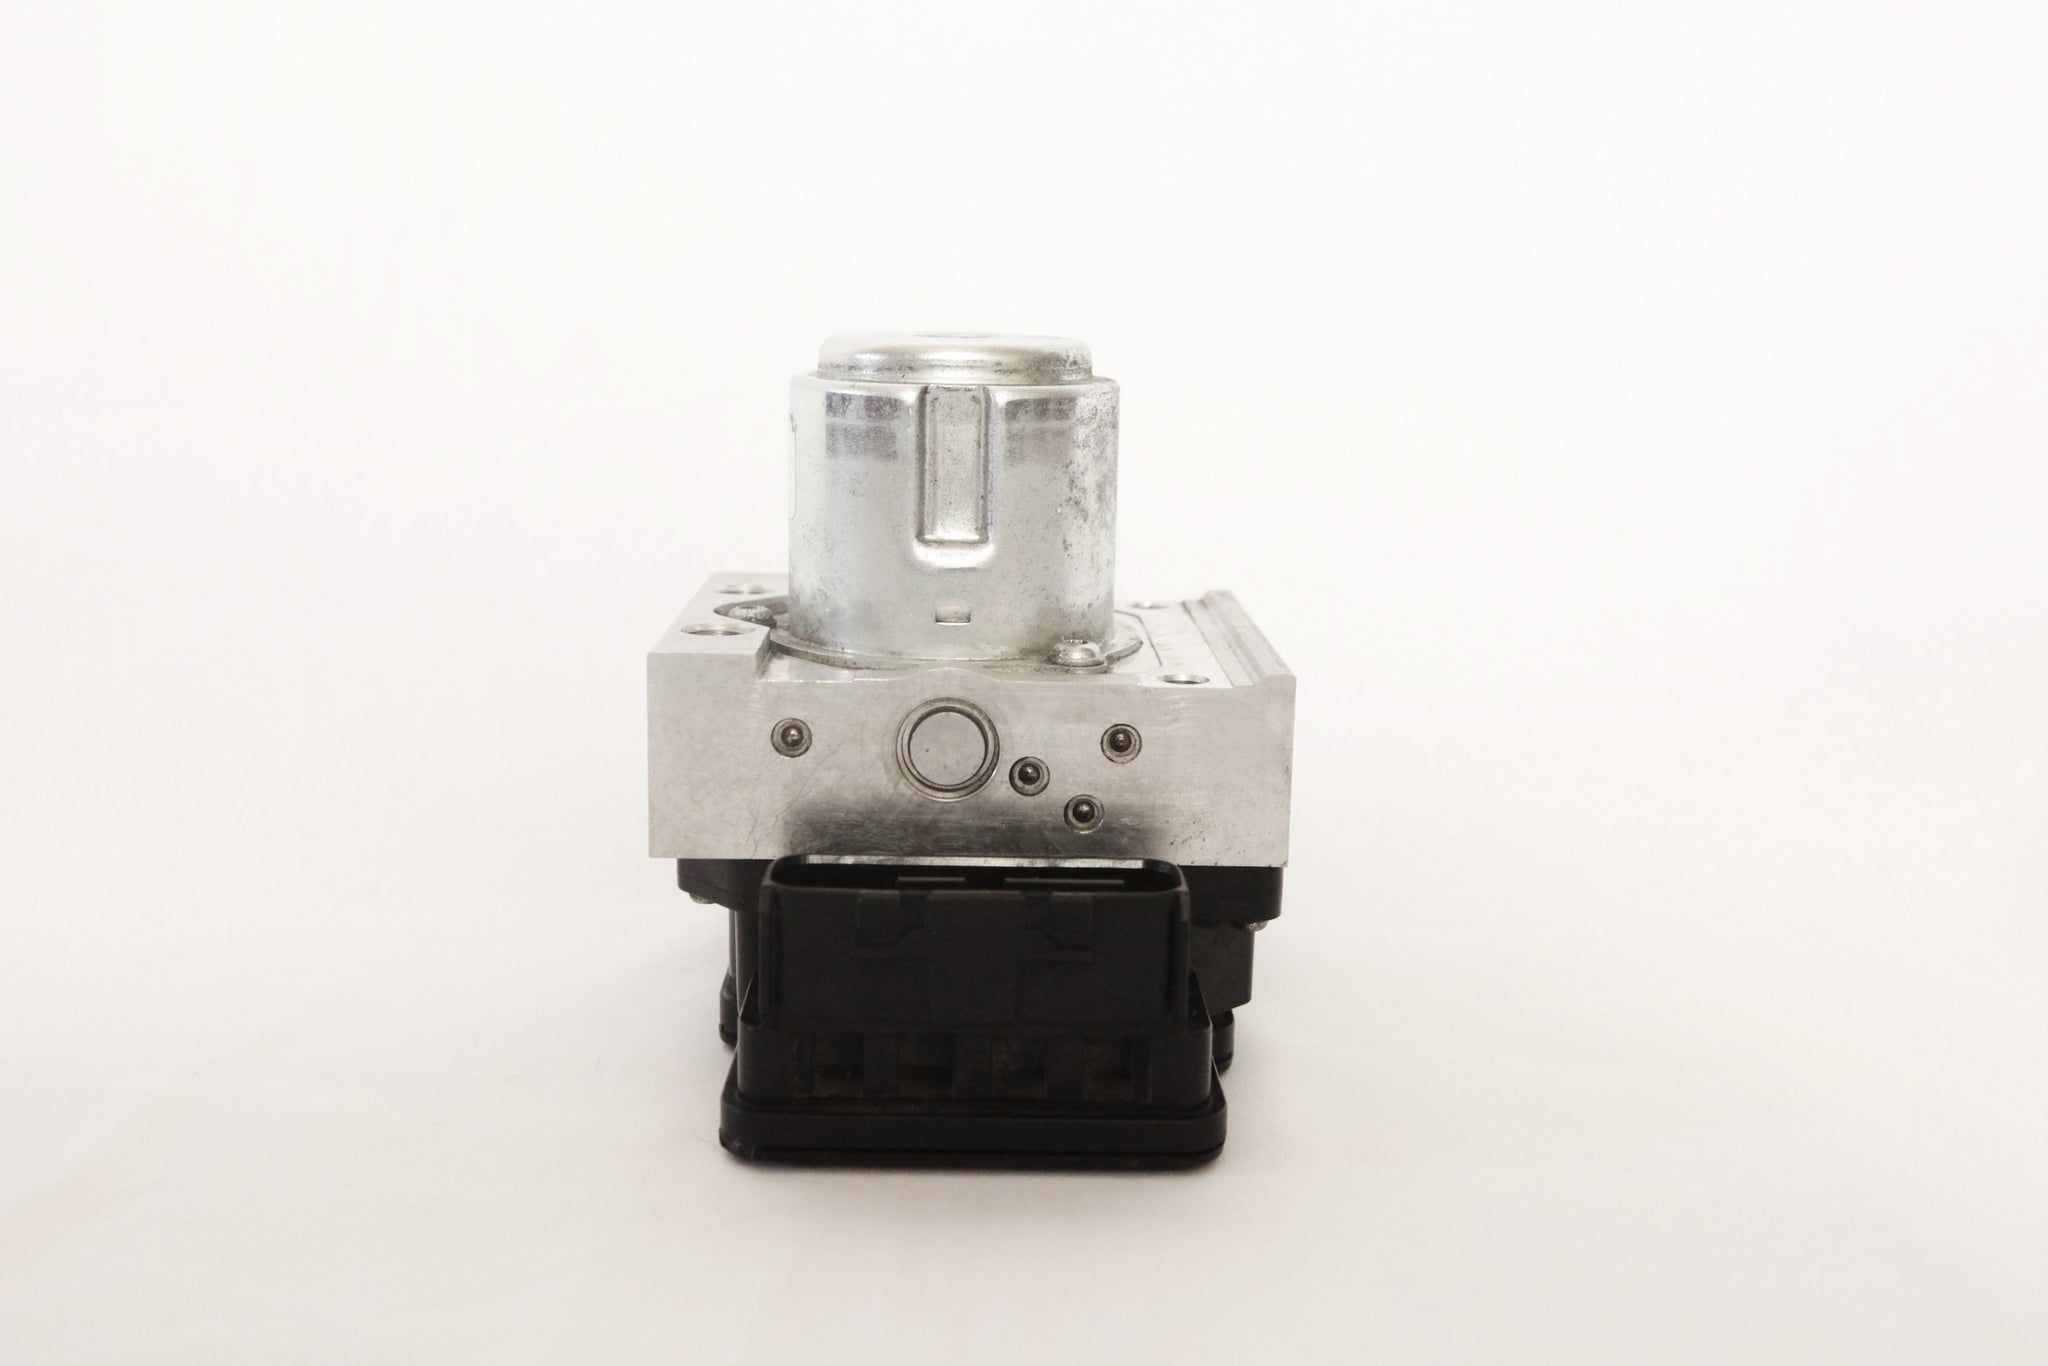 2008 Honda Accord ABS Control Module Modulator Assembly, SEDAN, US MARKET (VEHICLE STABILITY ASSIST), 3.5L